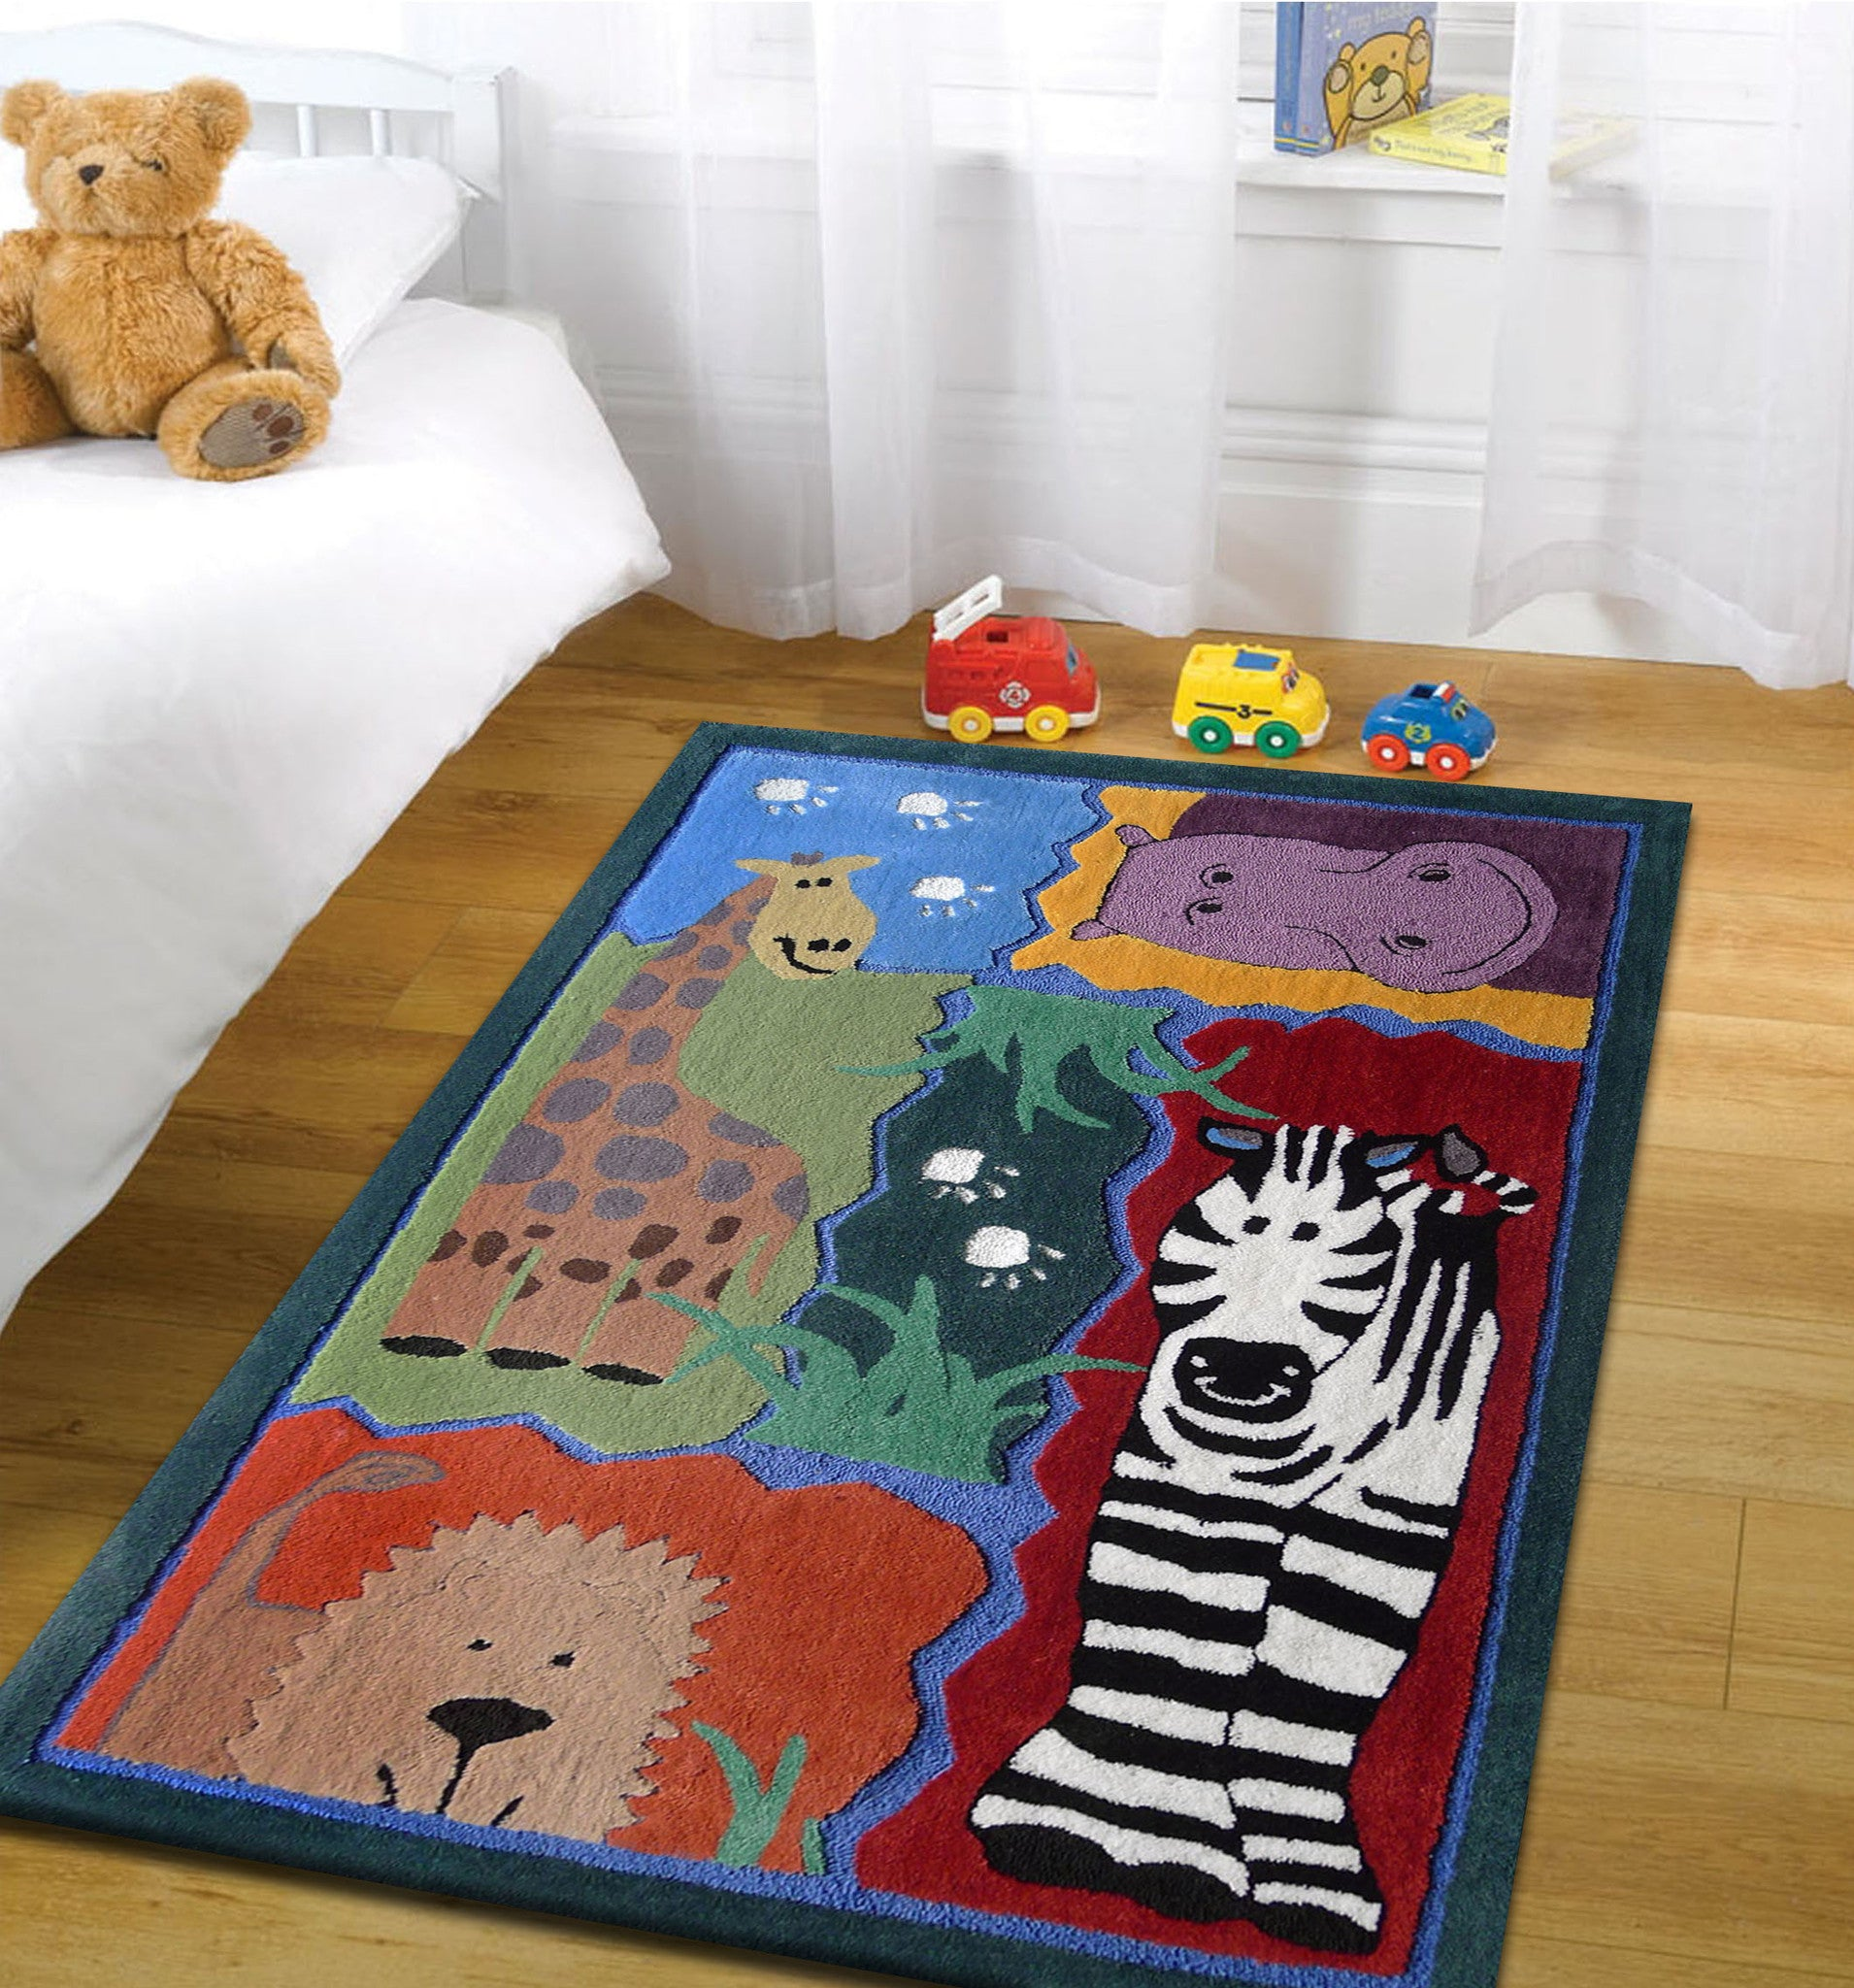 4 39 x 6 39 ft boy 39 s bedroom kids area rug with zoo animals for Rugs for boys bedrooms